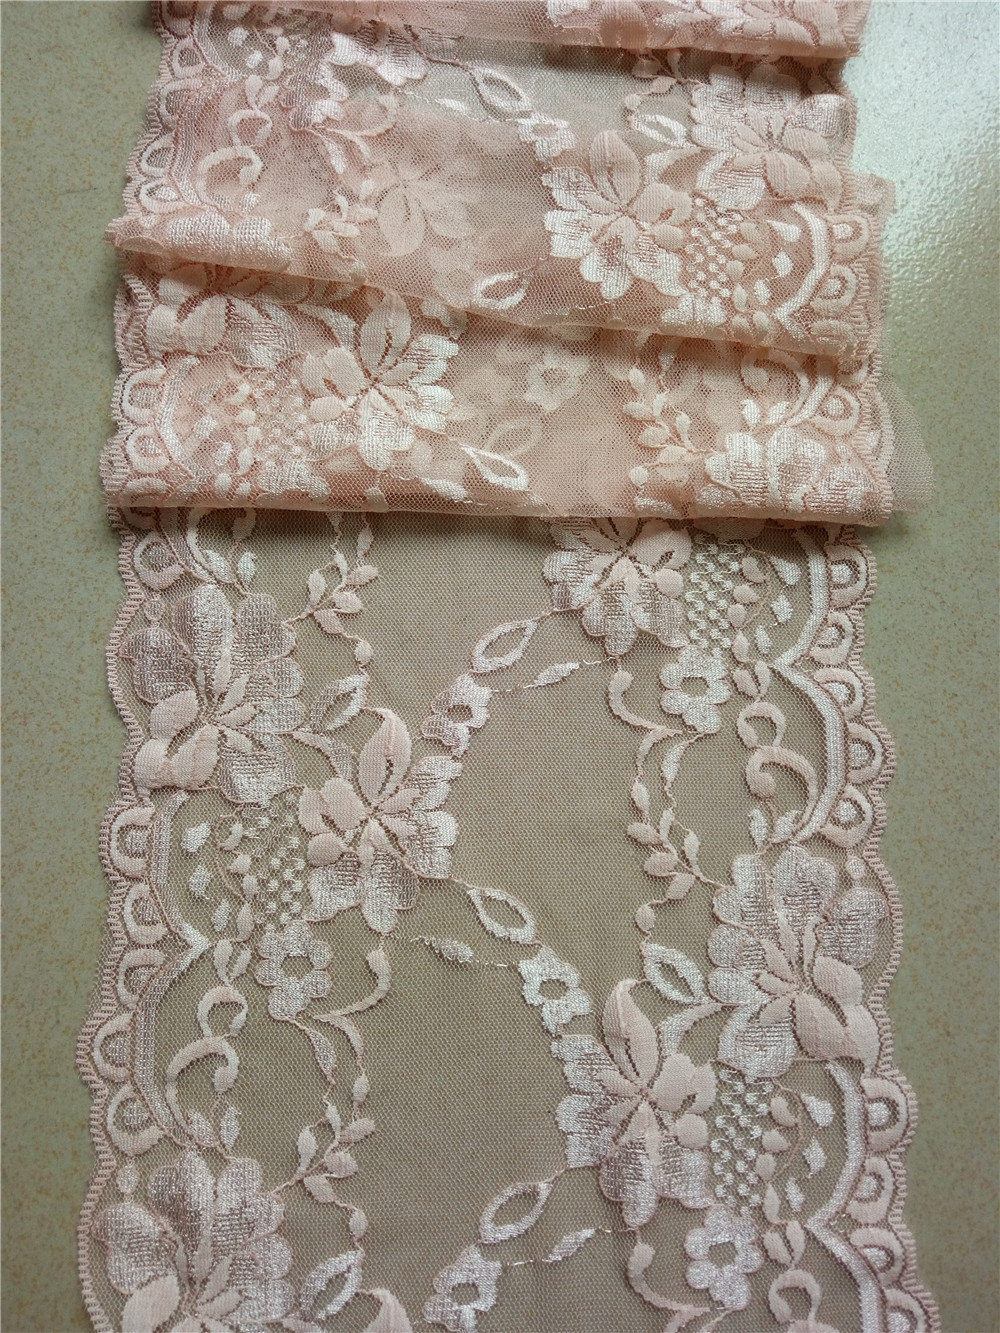 Lace and Burlap Table Runners | Sequin Table Runner Wholesale | Lace Table Runners